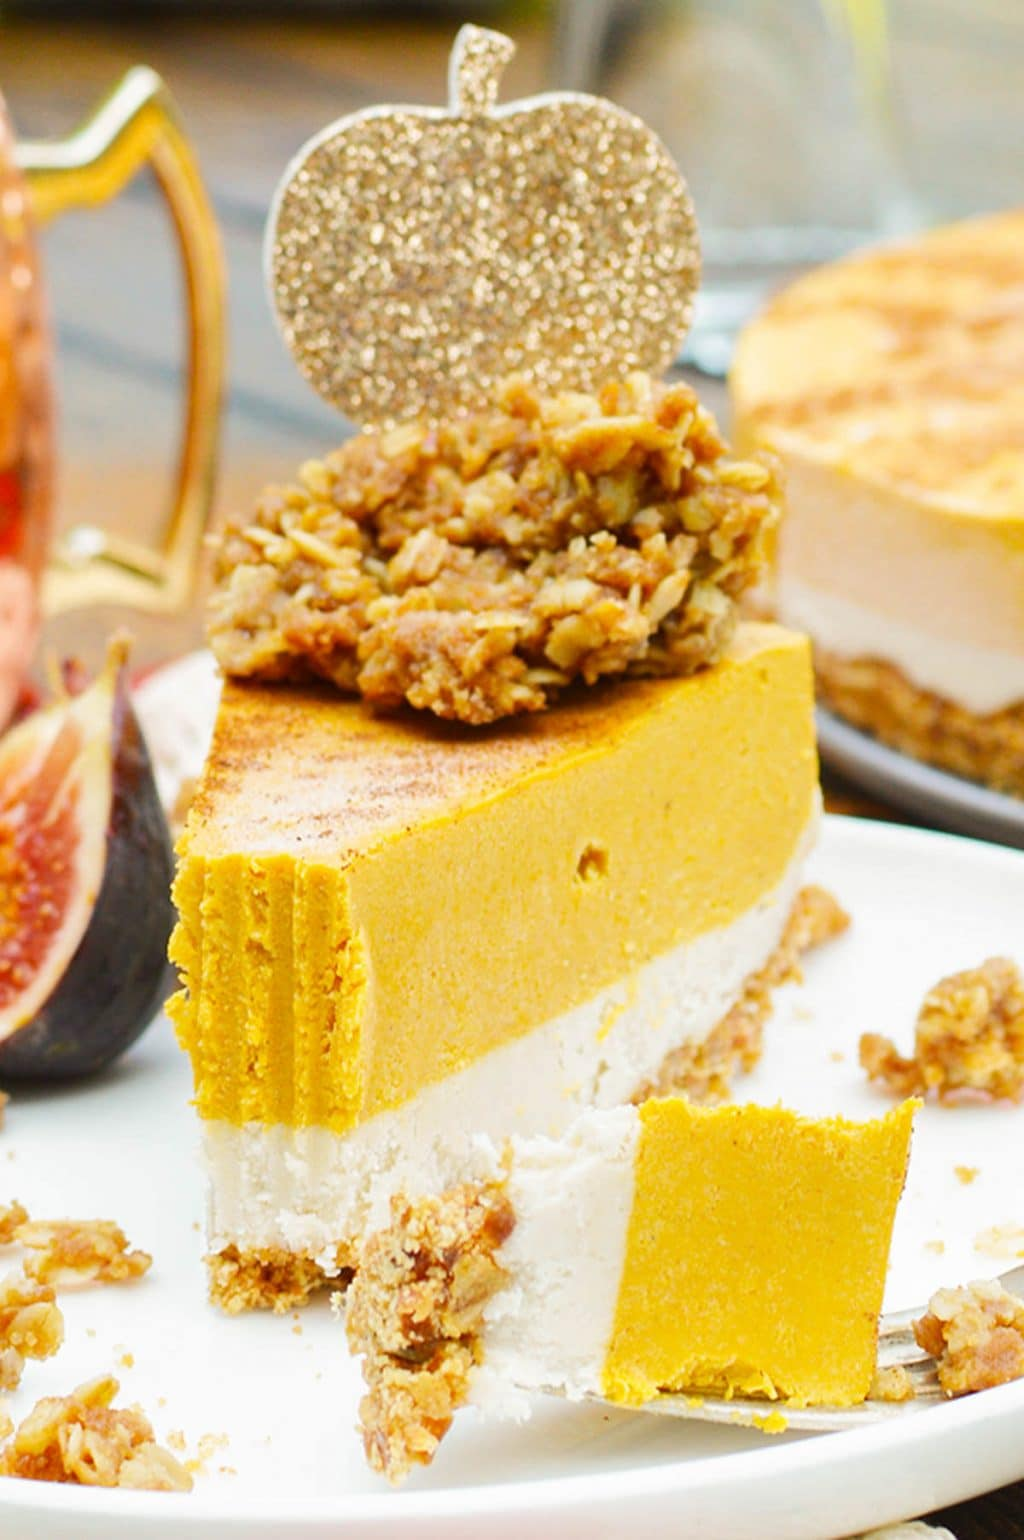 Vegan Pumpkin Pie with streusel topping